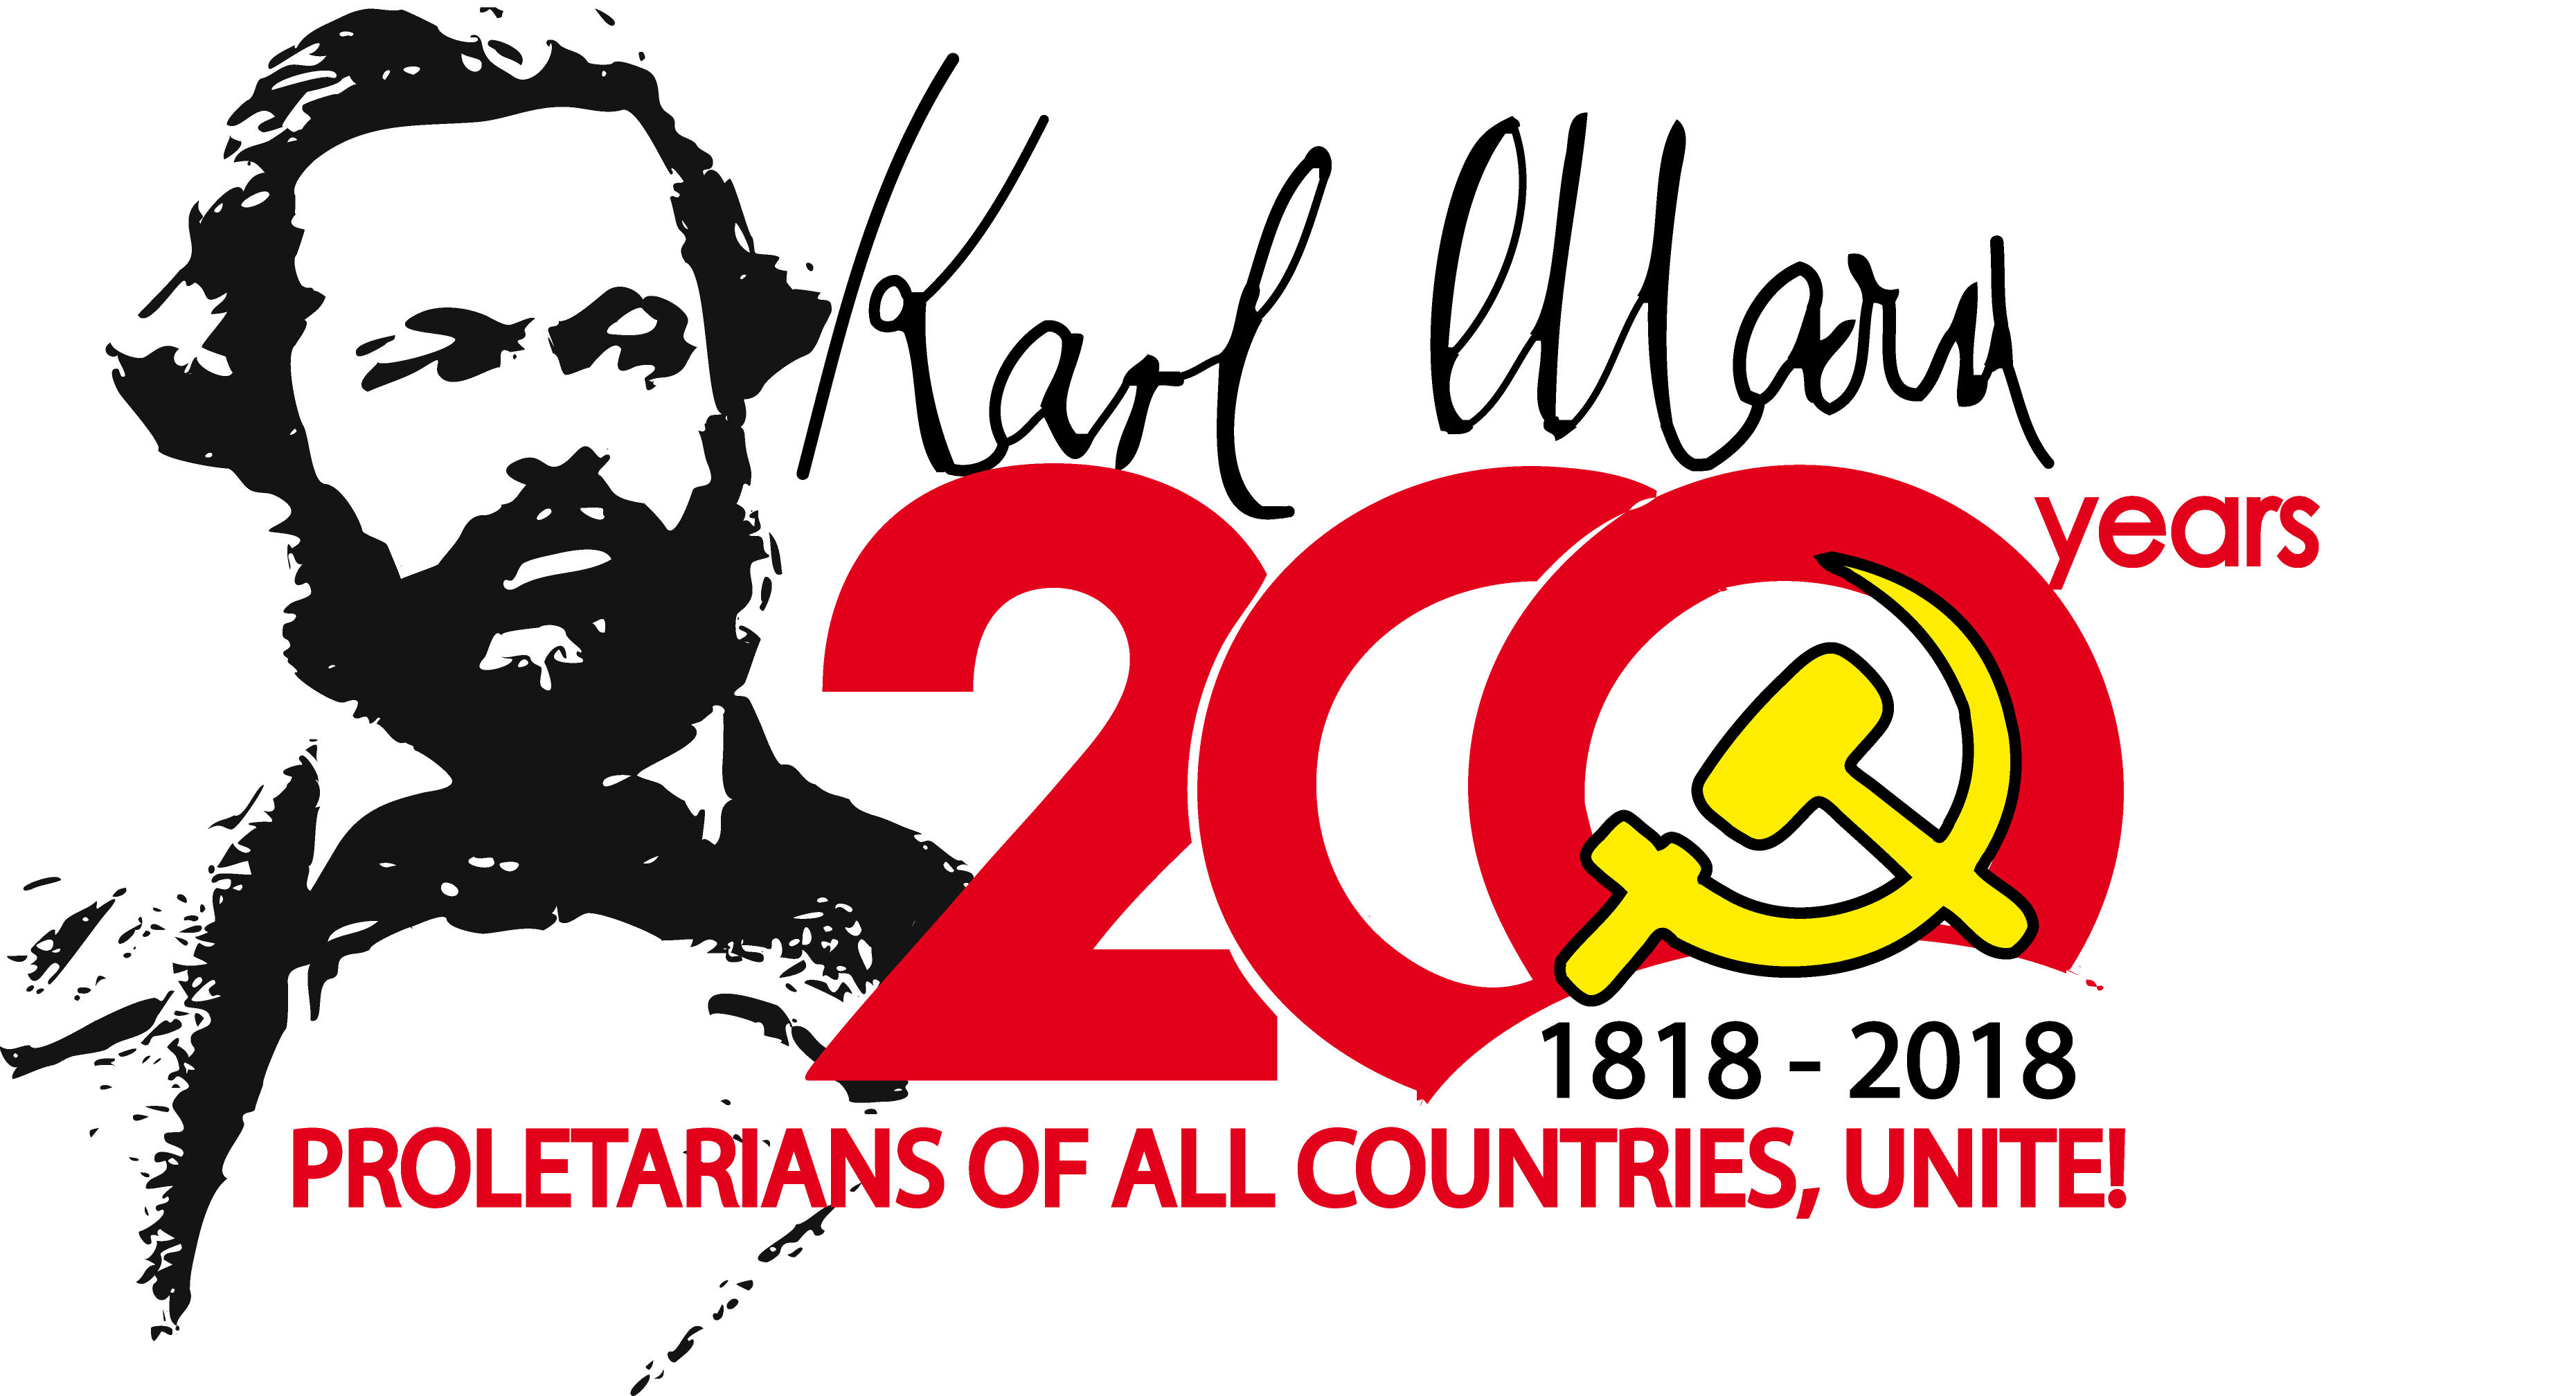 Long live the 200 year anniversary of the birth of the great Karl Marx!